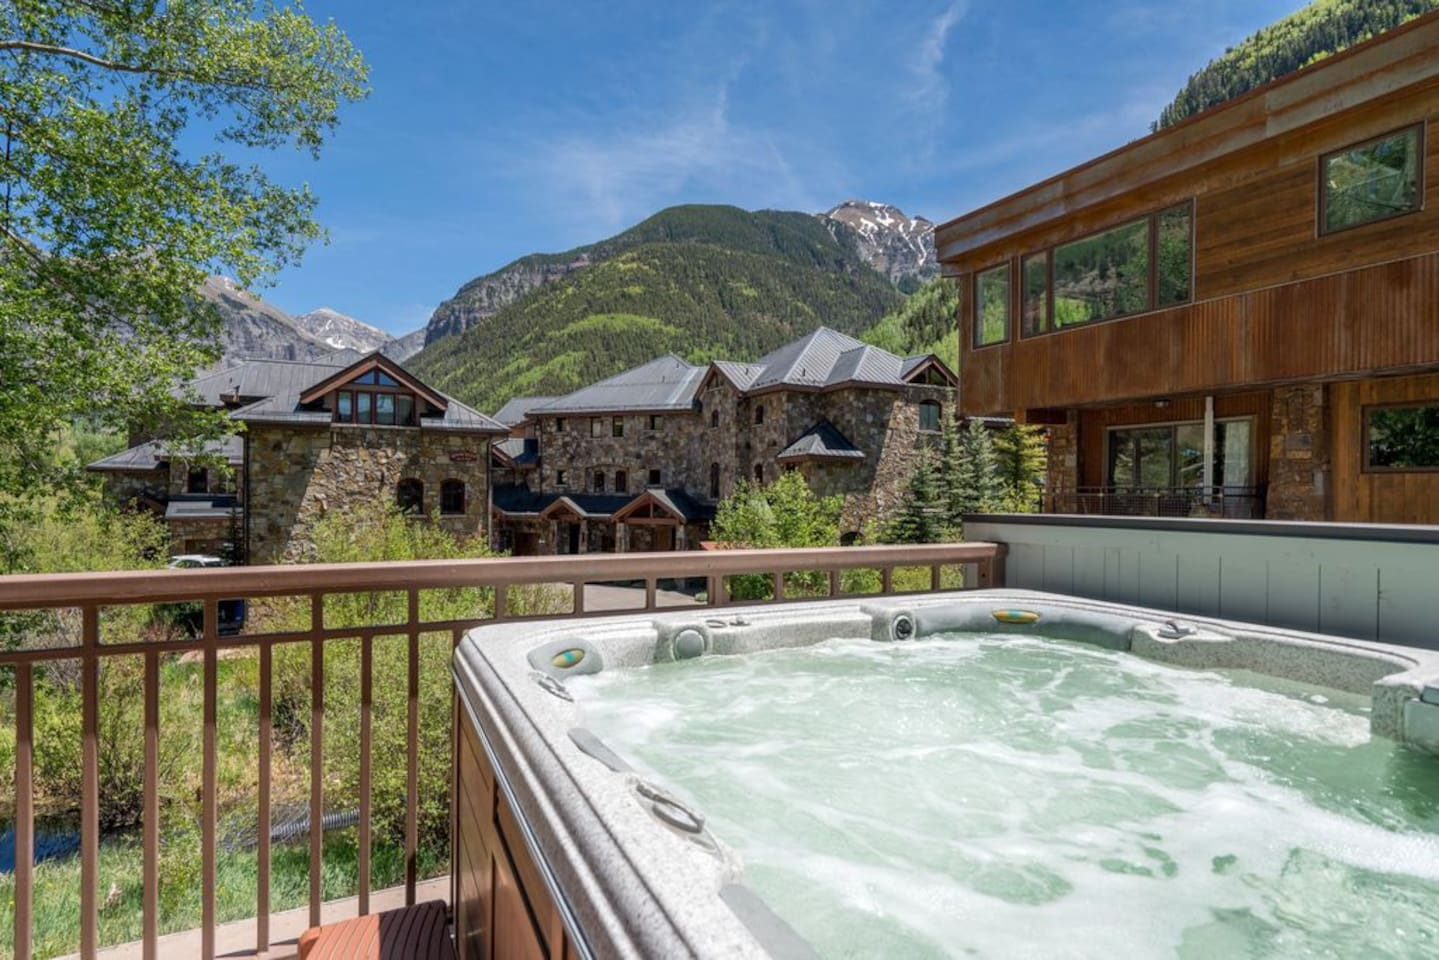 Enjoy the private hot tub and balcony with unbeatable 180° views! ♥